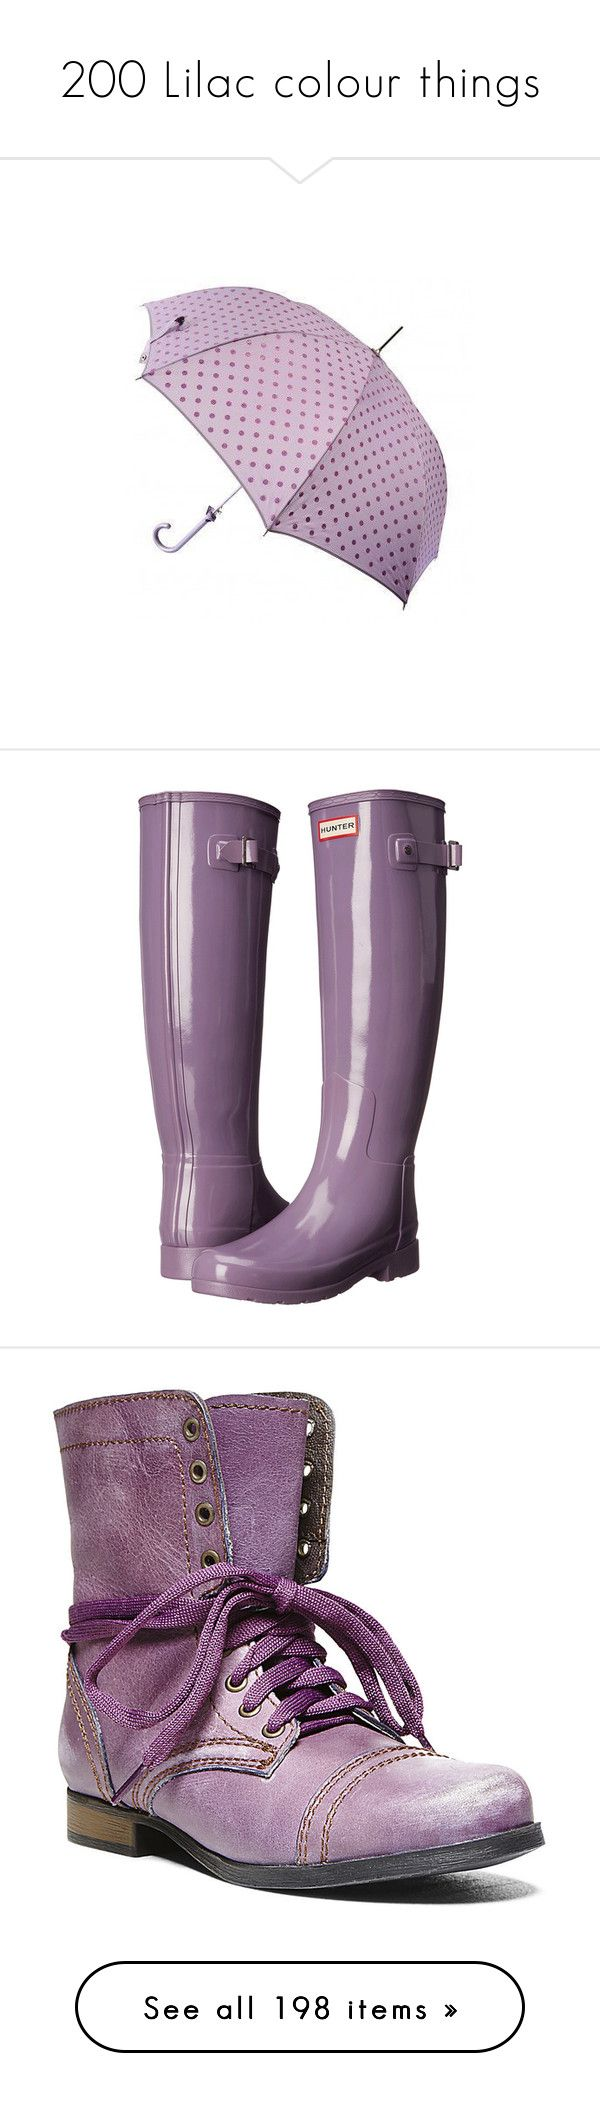 """""""200 Lilac colour things"""" by lorika-borika on Polyvore featuring shoes, boots, multi, hunter boots, rain boots, low heel boots, white rain boots, slip on rubber boots, purple leather и side zip military boots"""